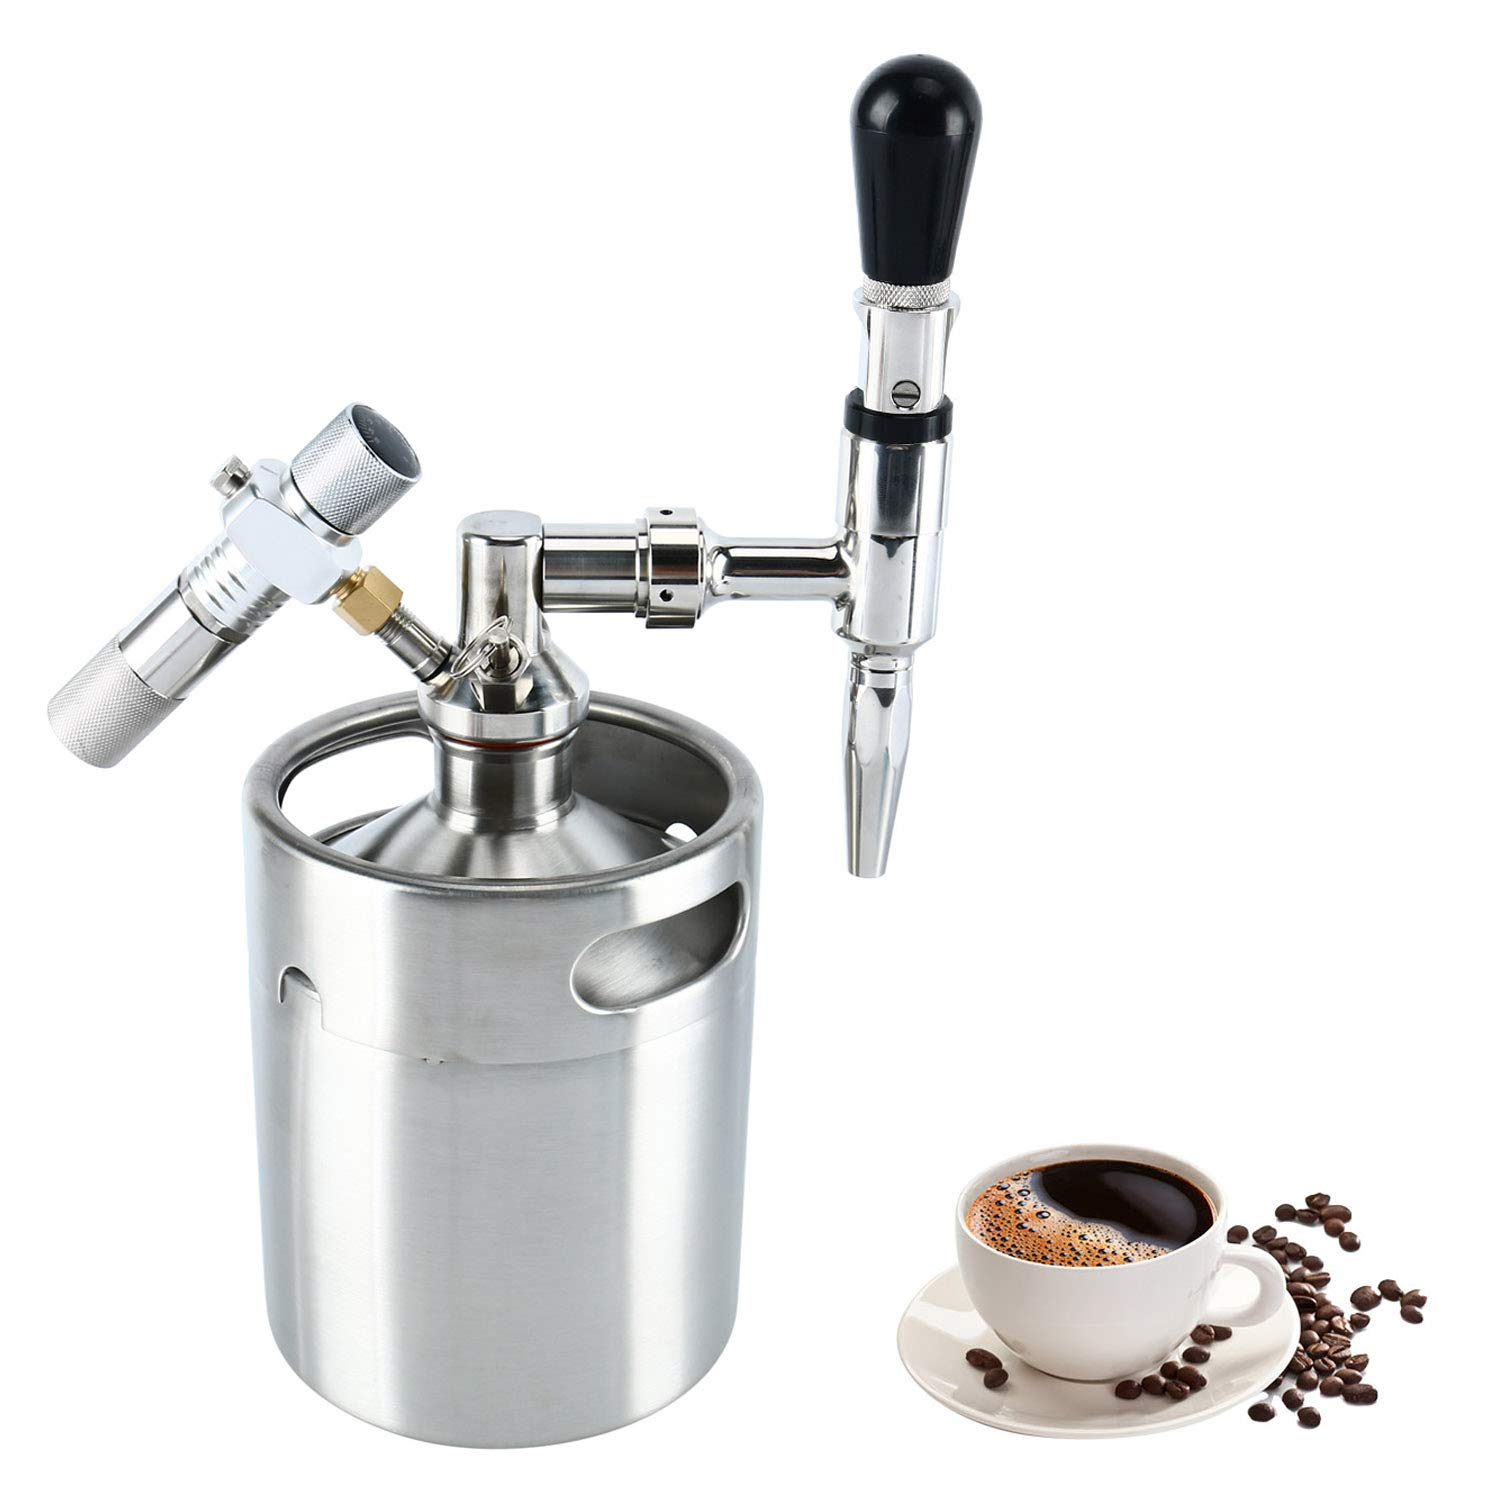 YaeBrew 64 Ounce Mini Stainless Steel Homebrew Coffee Keg System Kit, Nitro Cold Brew Coffee Maker 64 oz, Best Gift for Coffee Lovers DIY Updated